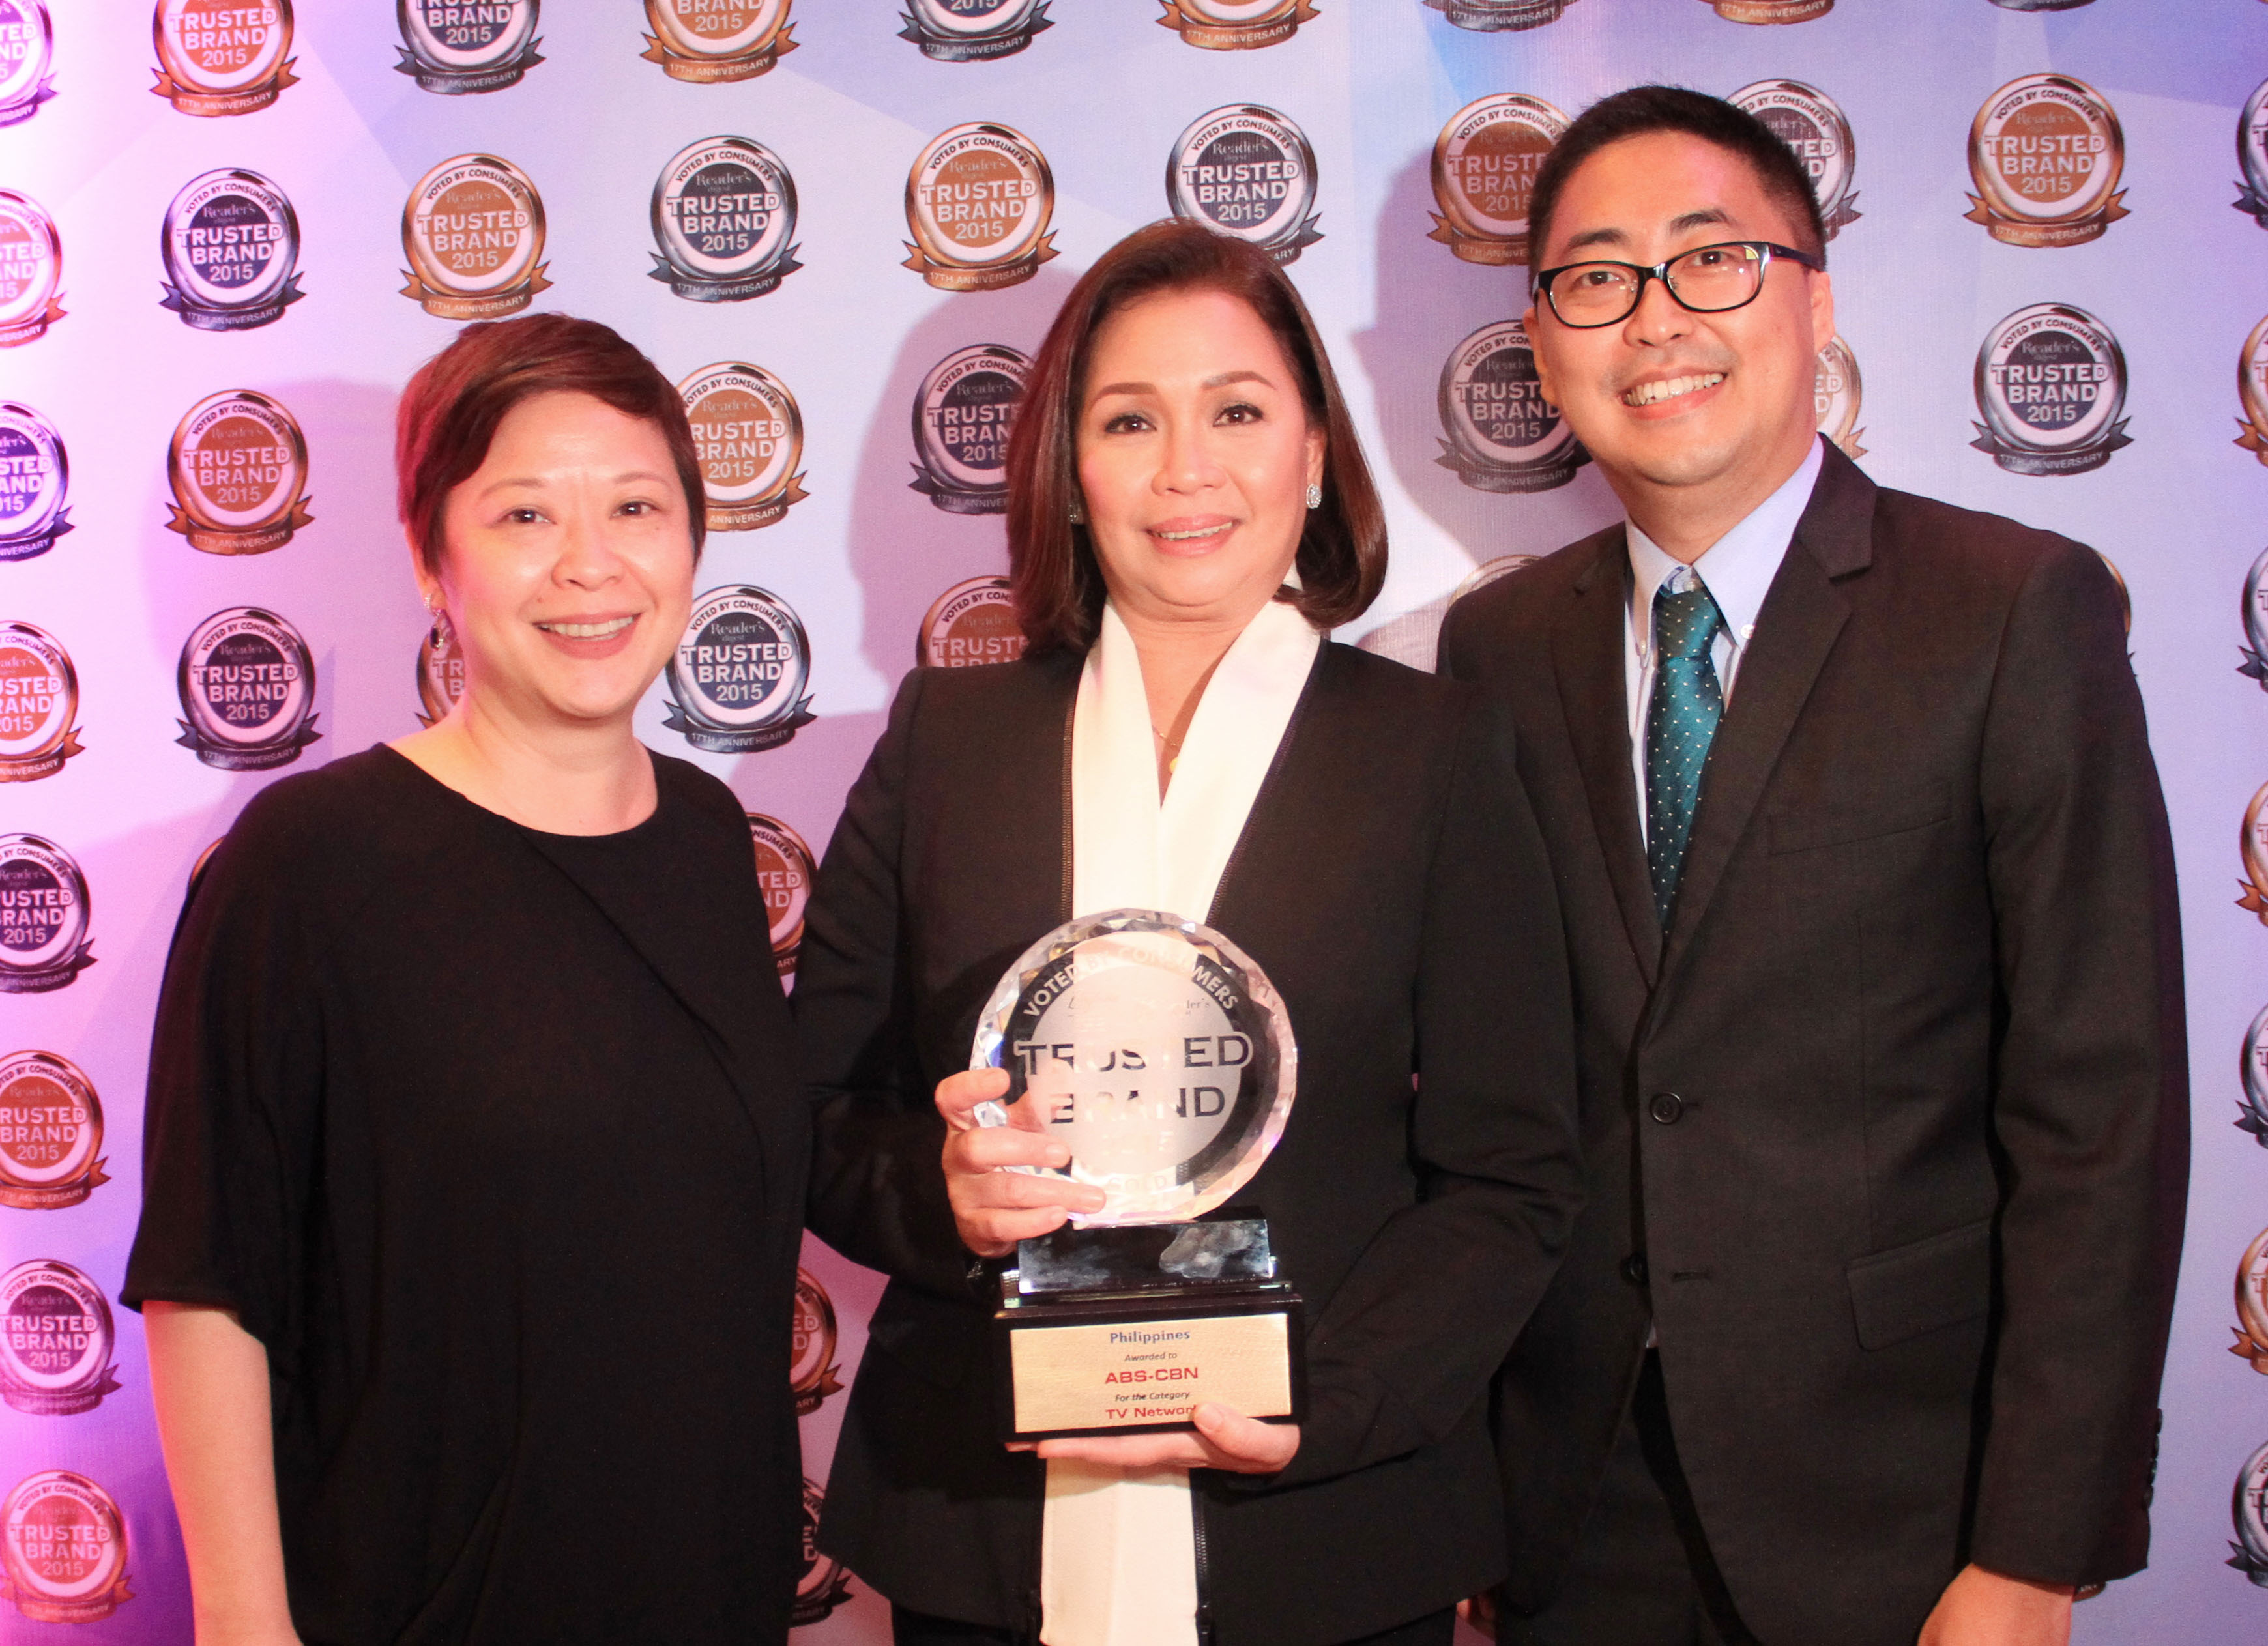 ABS-CBN, Asian Eye win Reader's Digest Trusted Brand awards anew